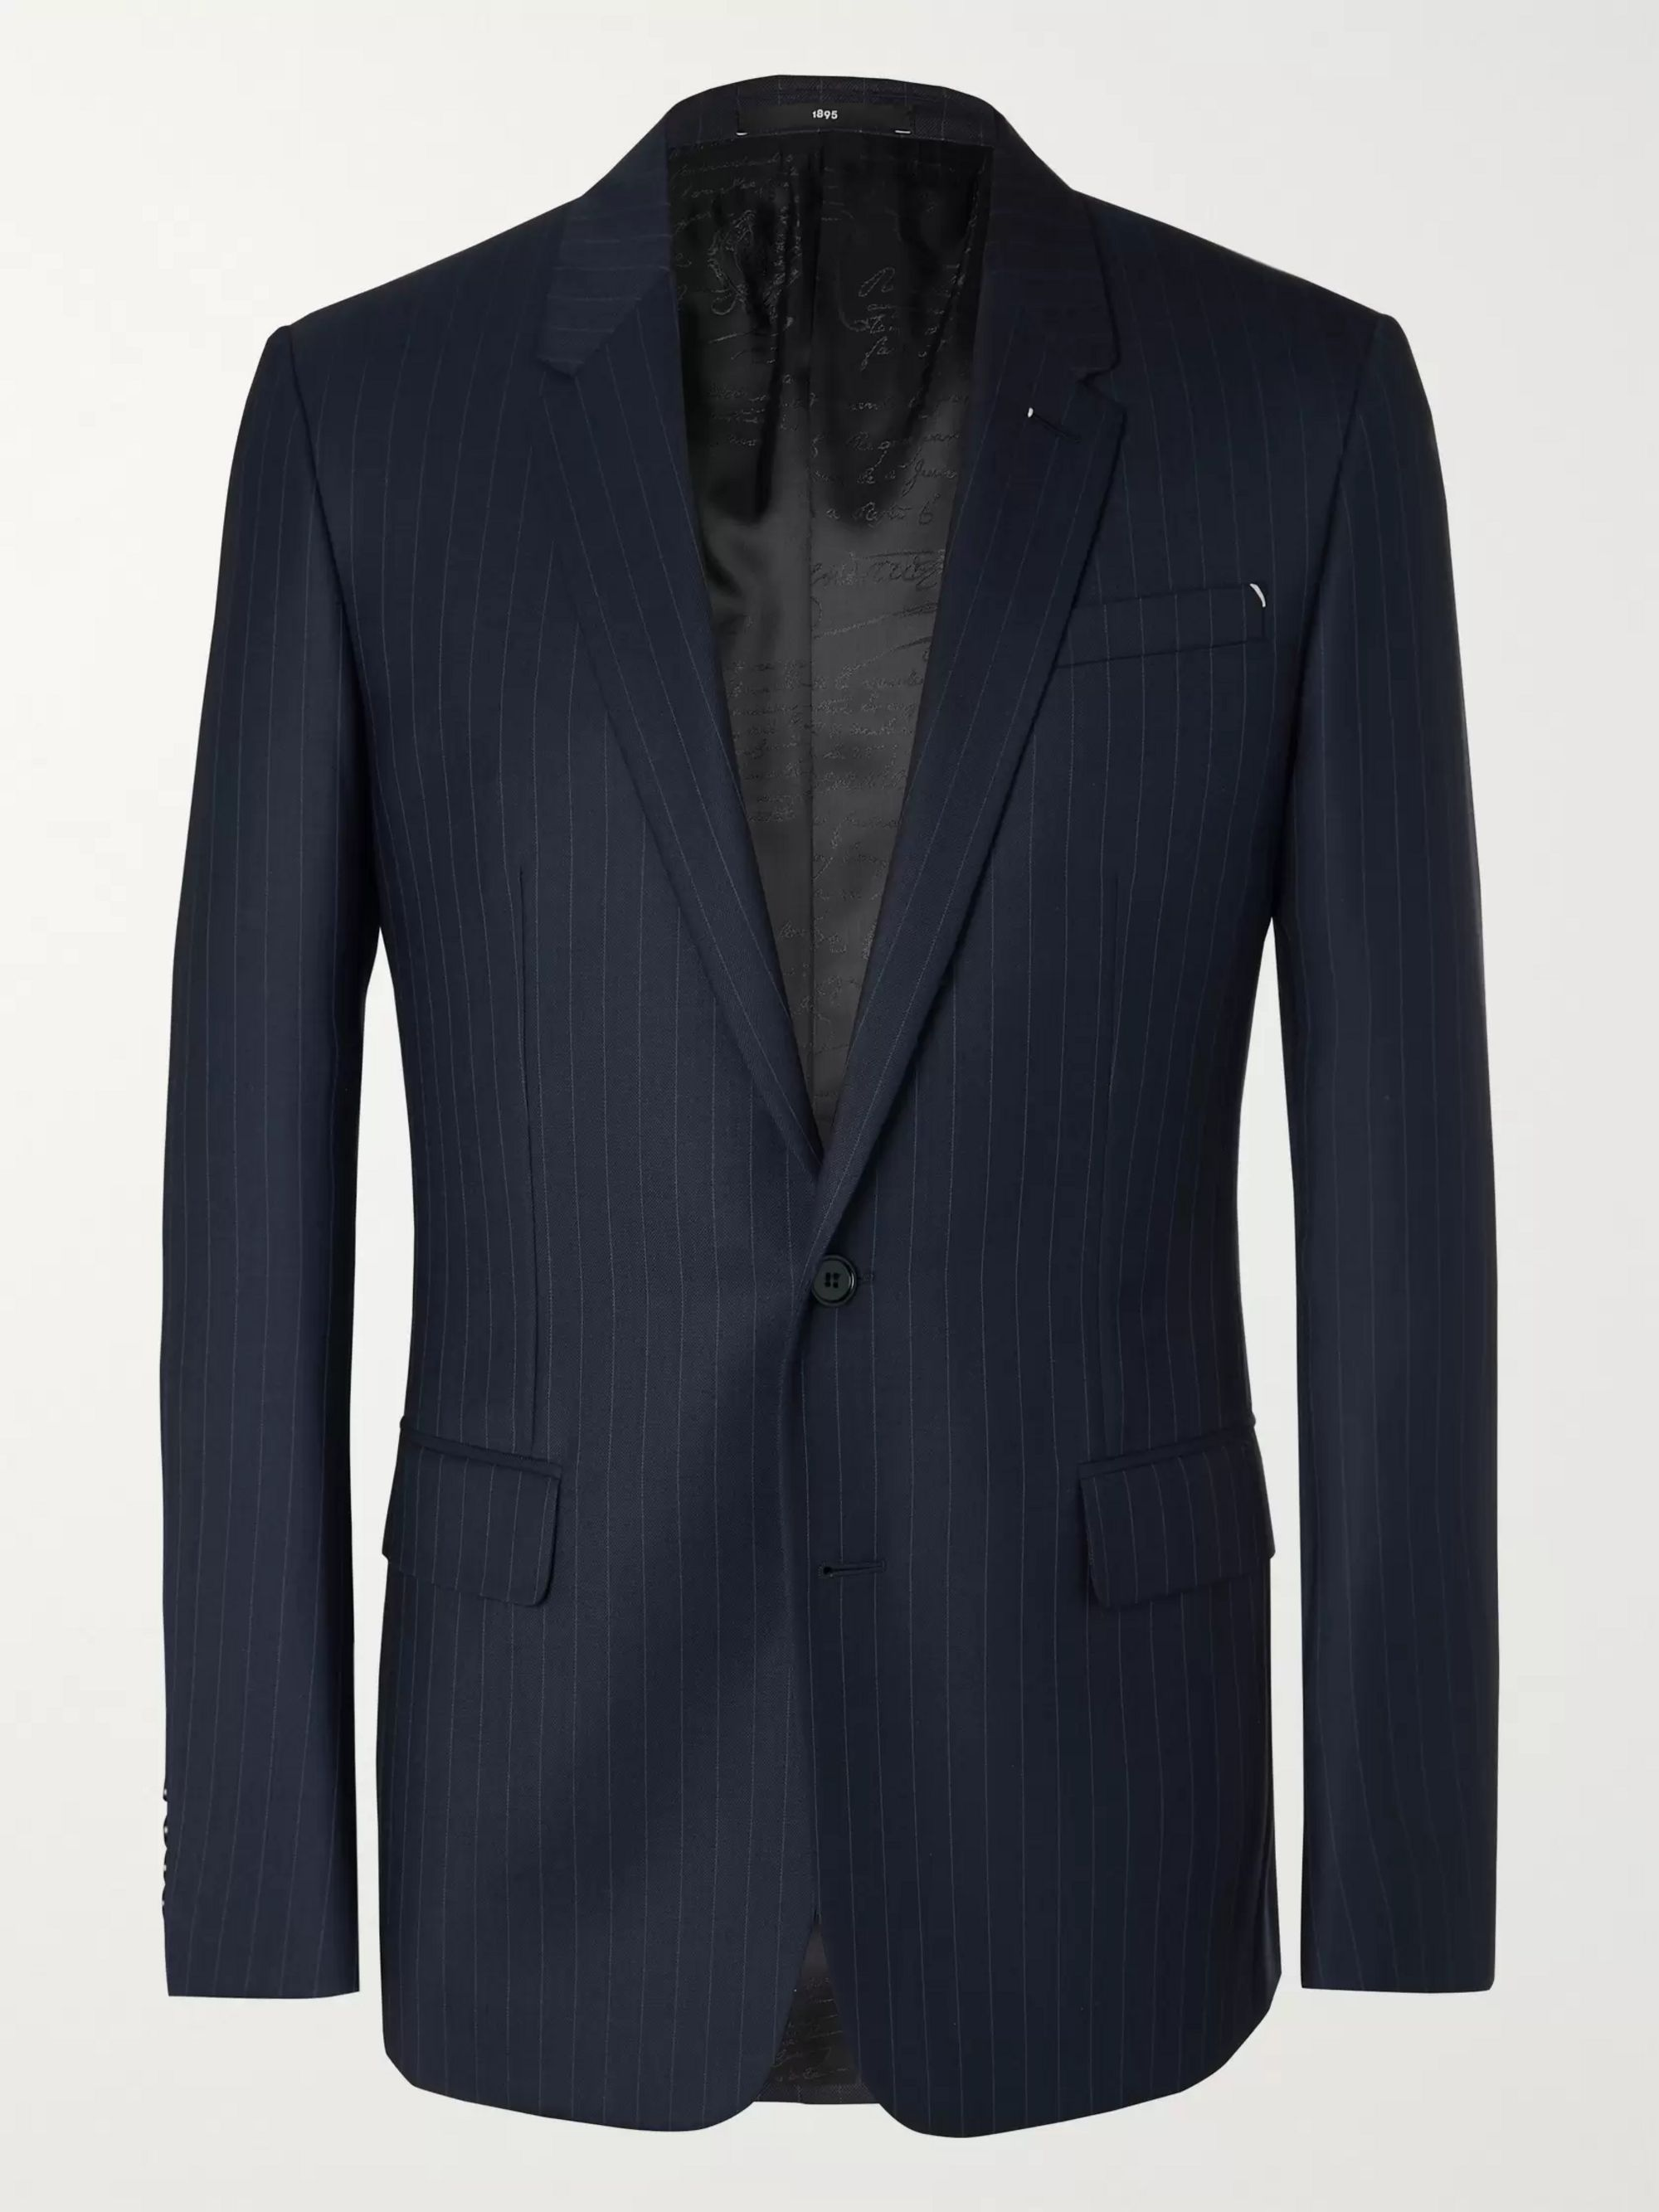 Berluti Navy Pinstriped Wool Suit Jacket